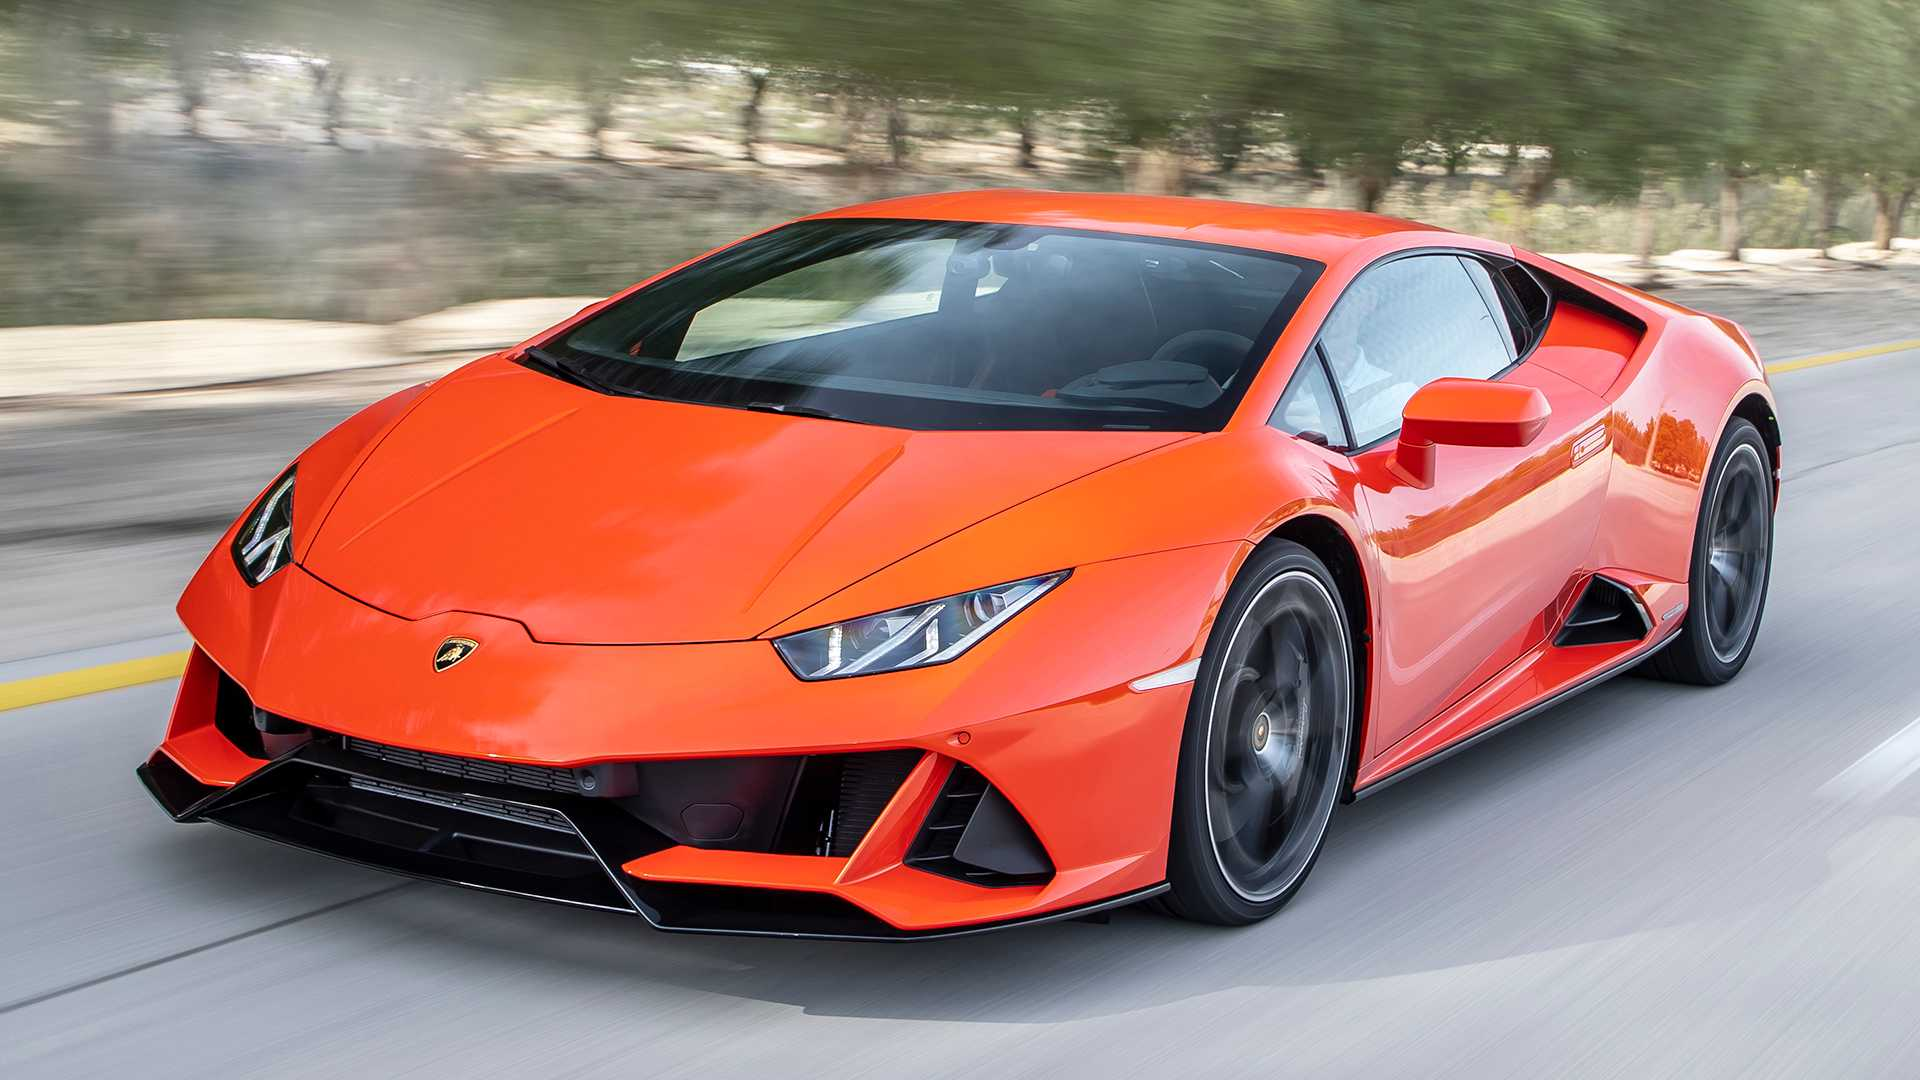 40 All New 2020 Lamborghini Huracan Pricing